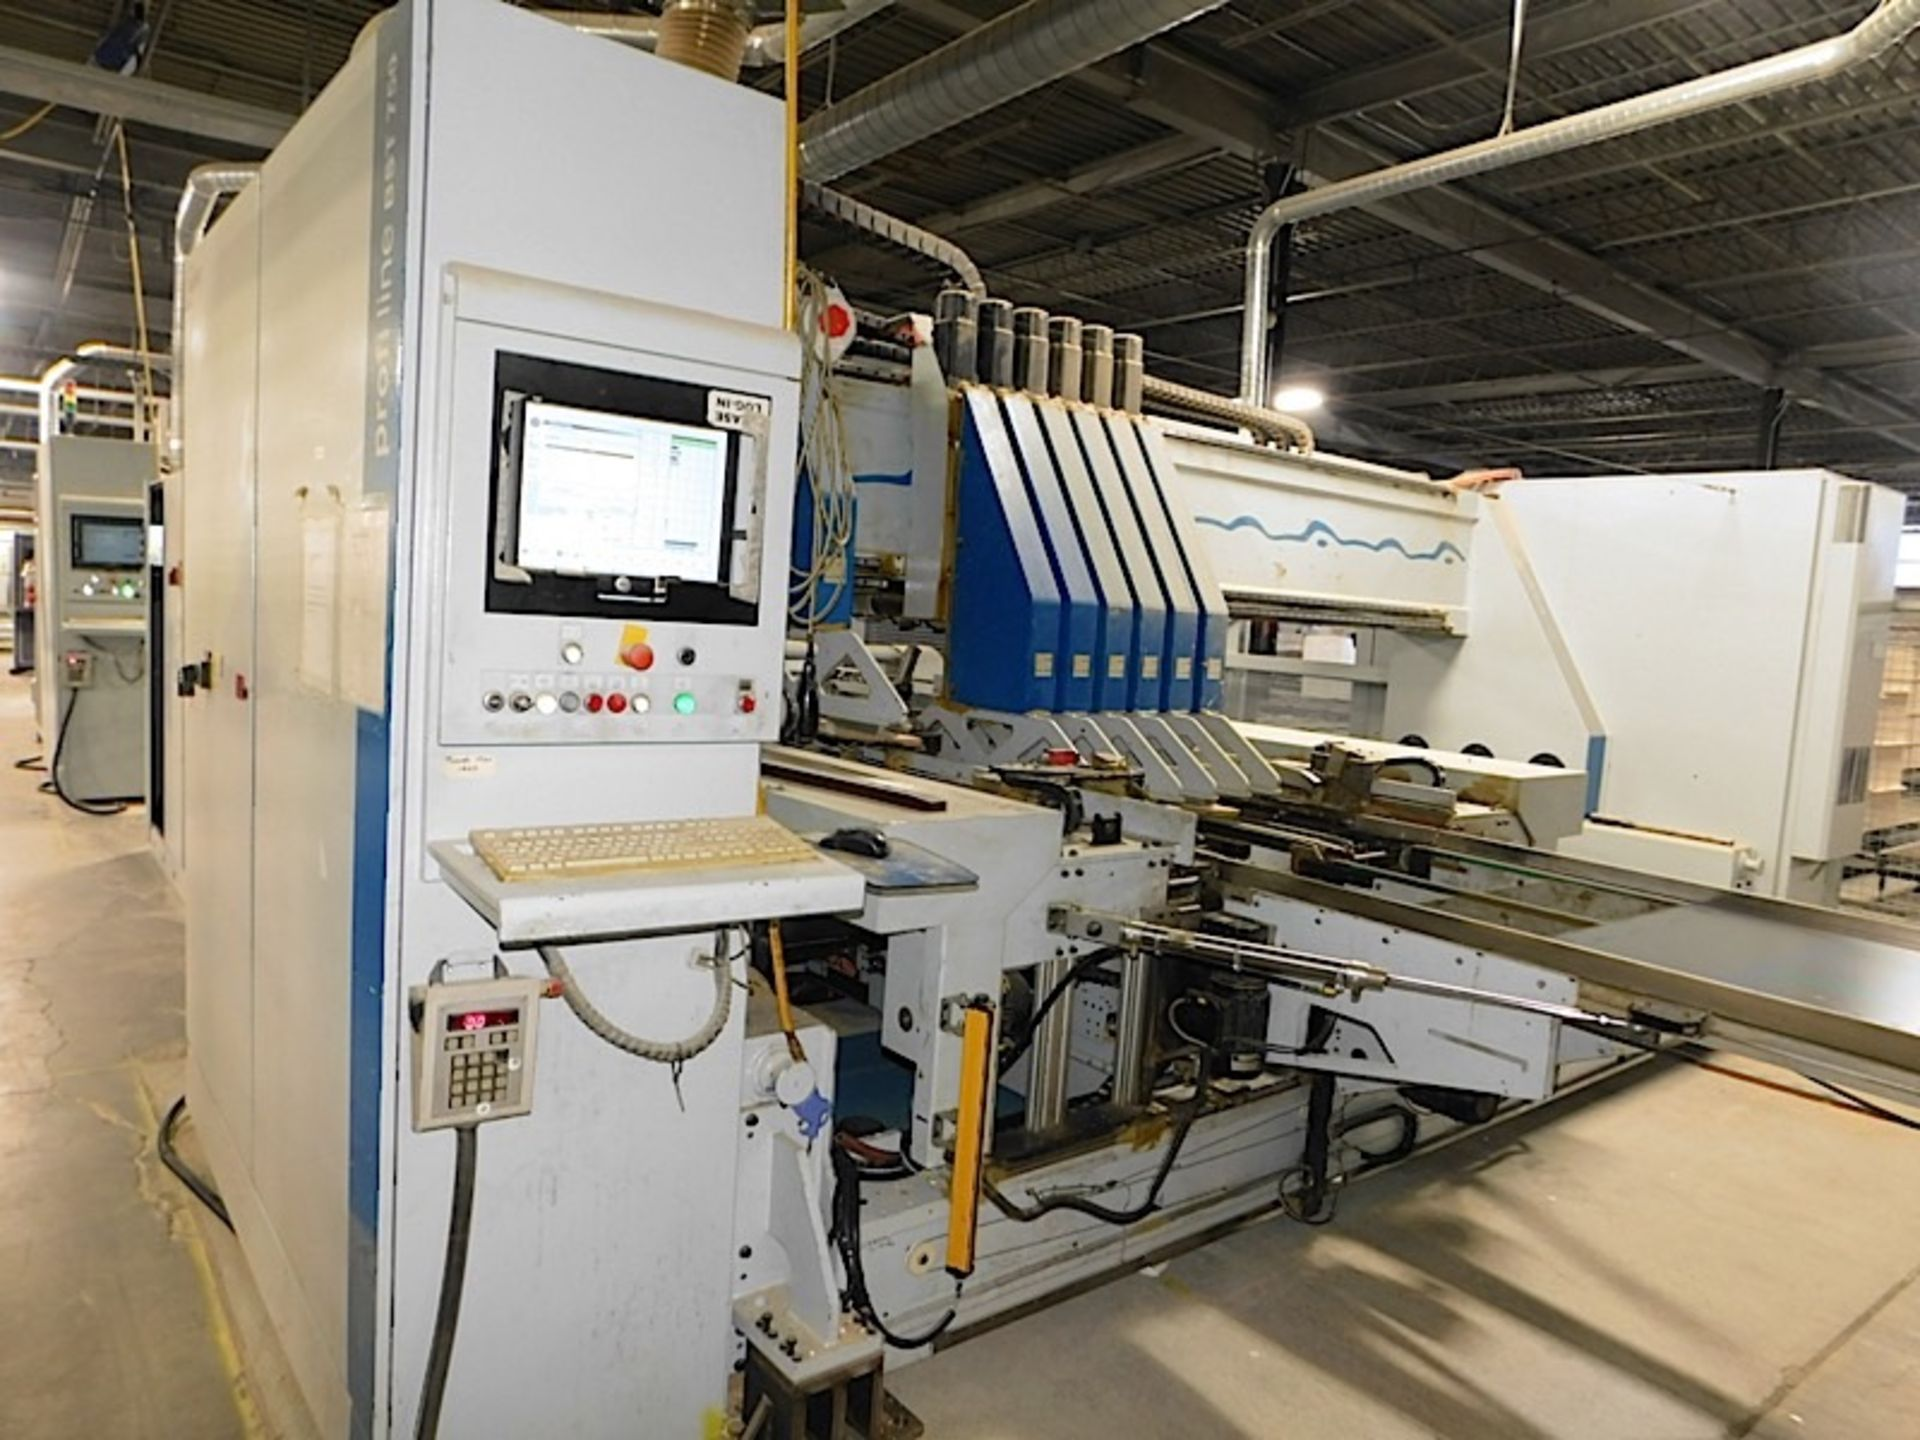 Lot 7d - 2006 WEEKE (BST 750) BOTTOM AND SIDE CNC DRILLING MACHINE (SOLD SUBJECT TO BULK BID PRICE OF LOT 7)